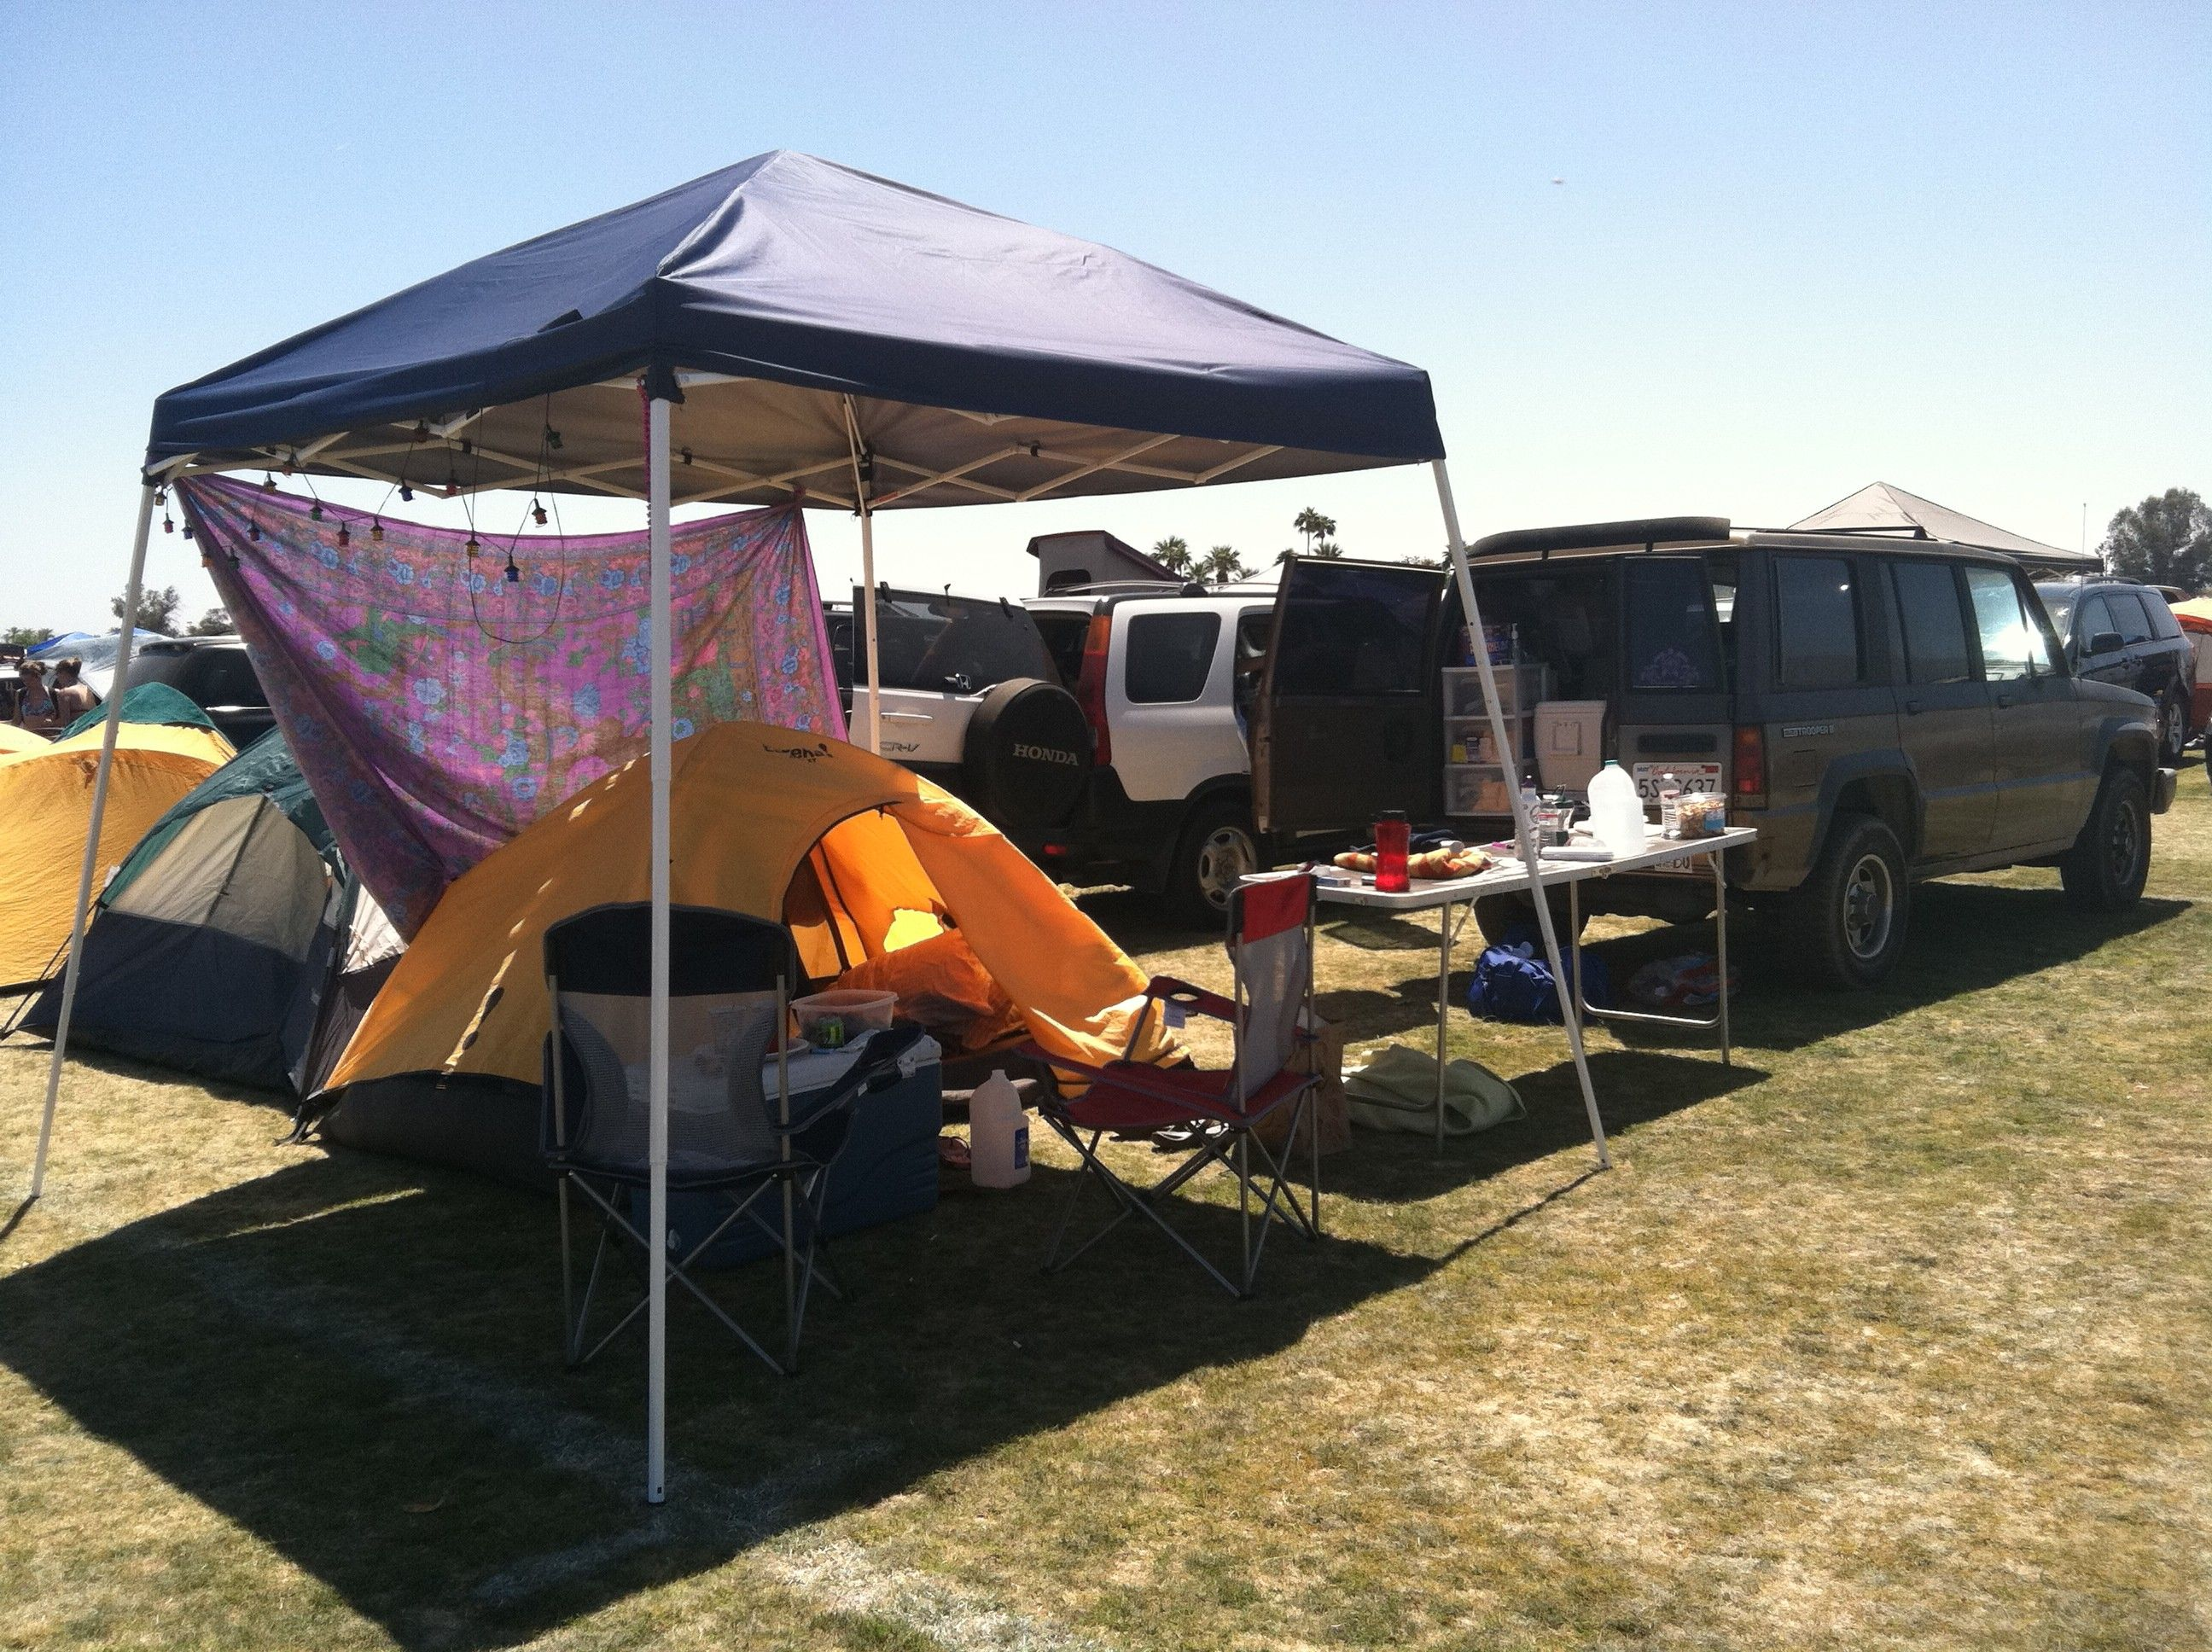 Coachella car camping use sheets or shower curtains for privacy protection from sun